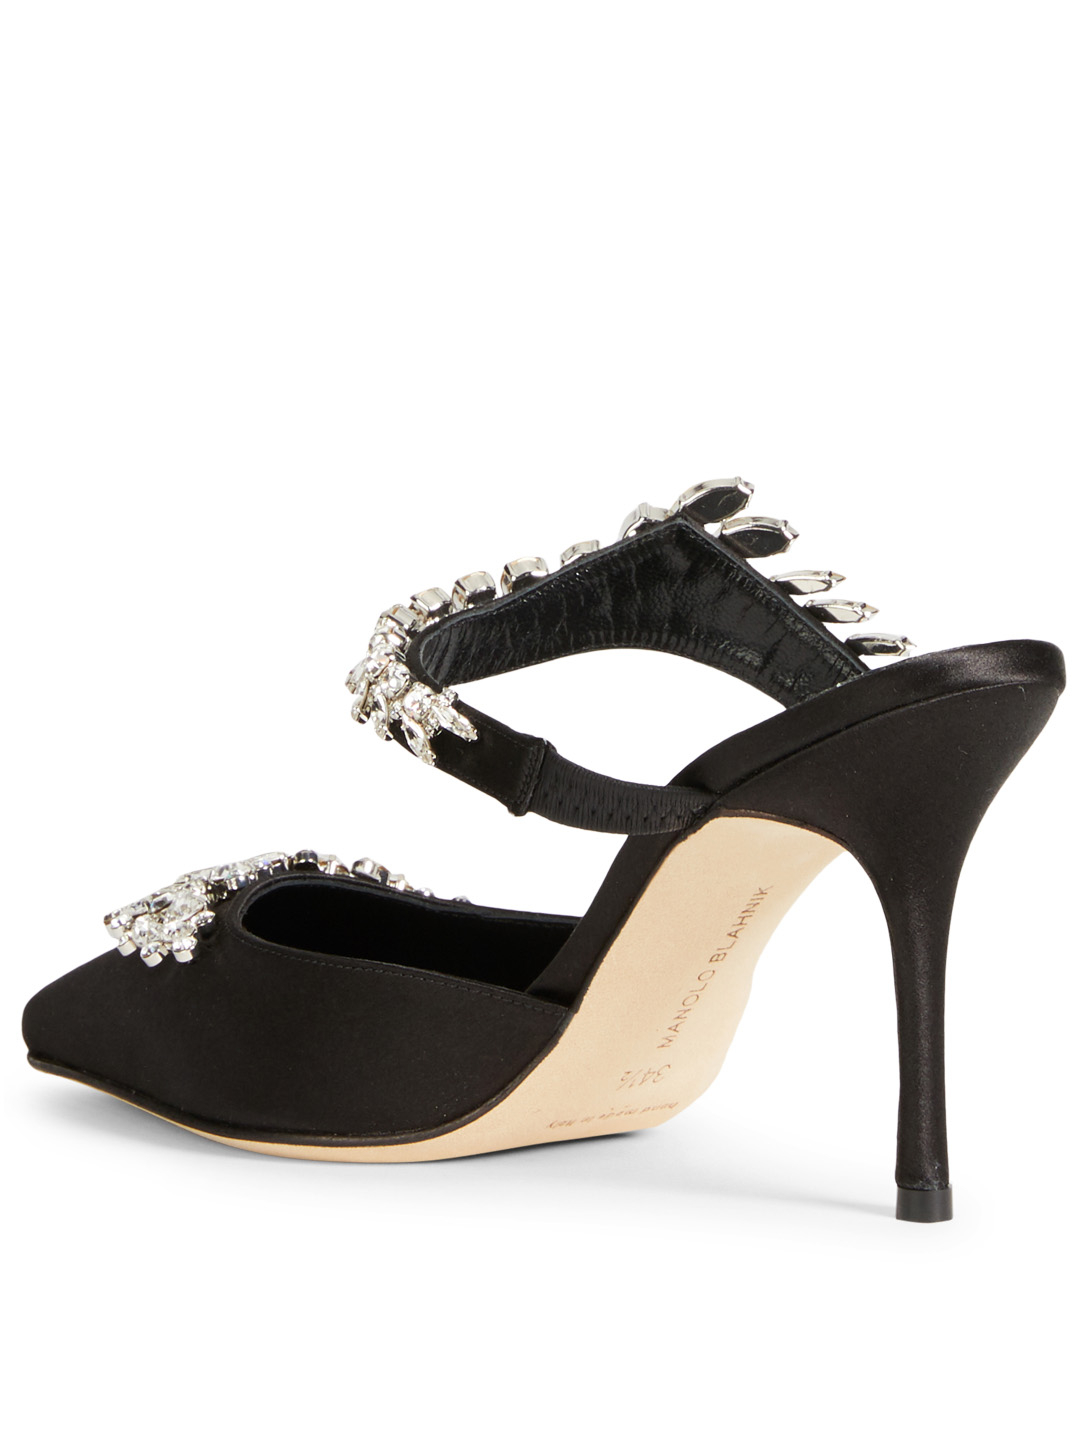 MANOLO BLAHNIK Lurum Satin Mules With Crystal Embellishment Designers Black